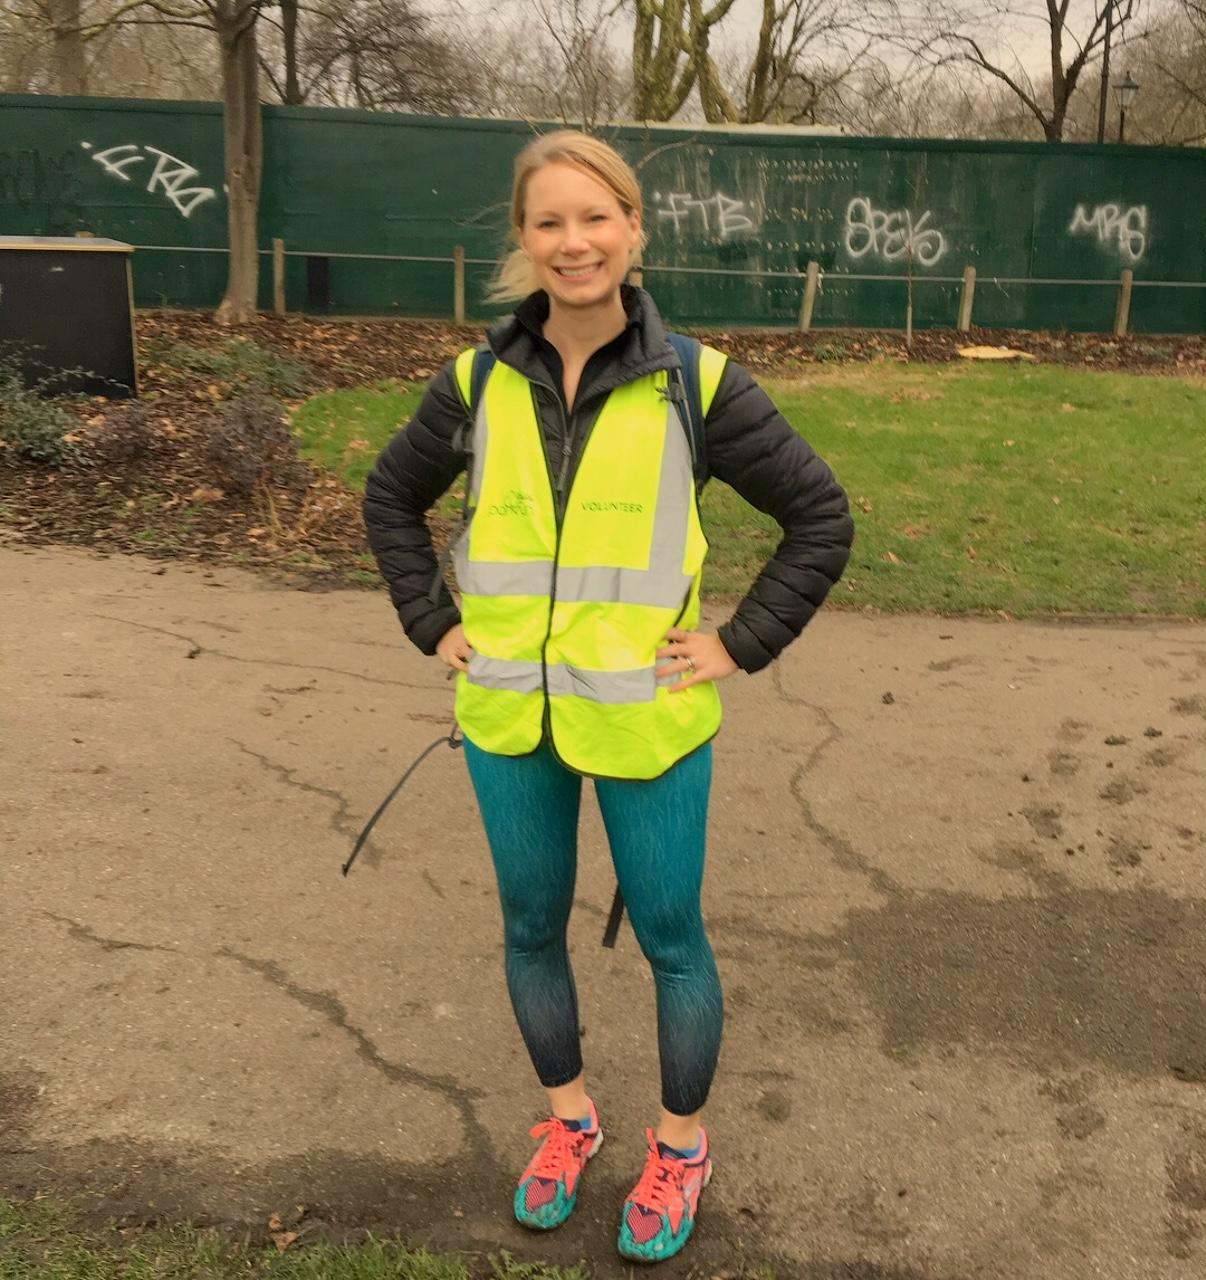 Volunteering at Parkrun